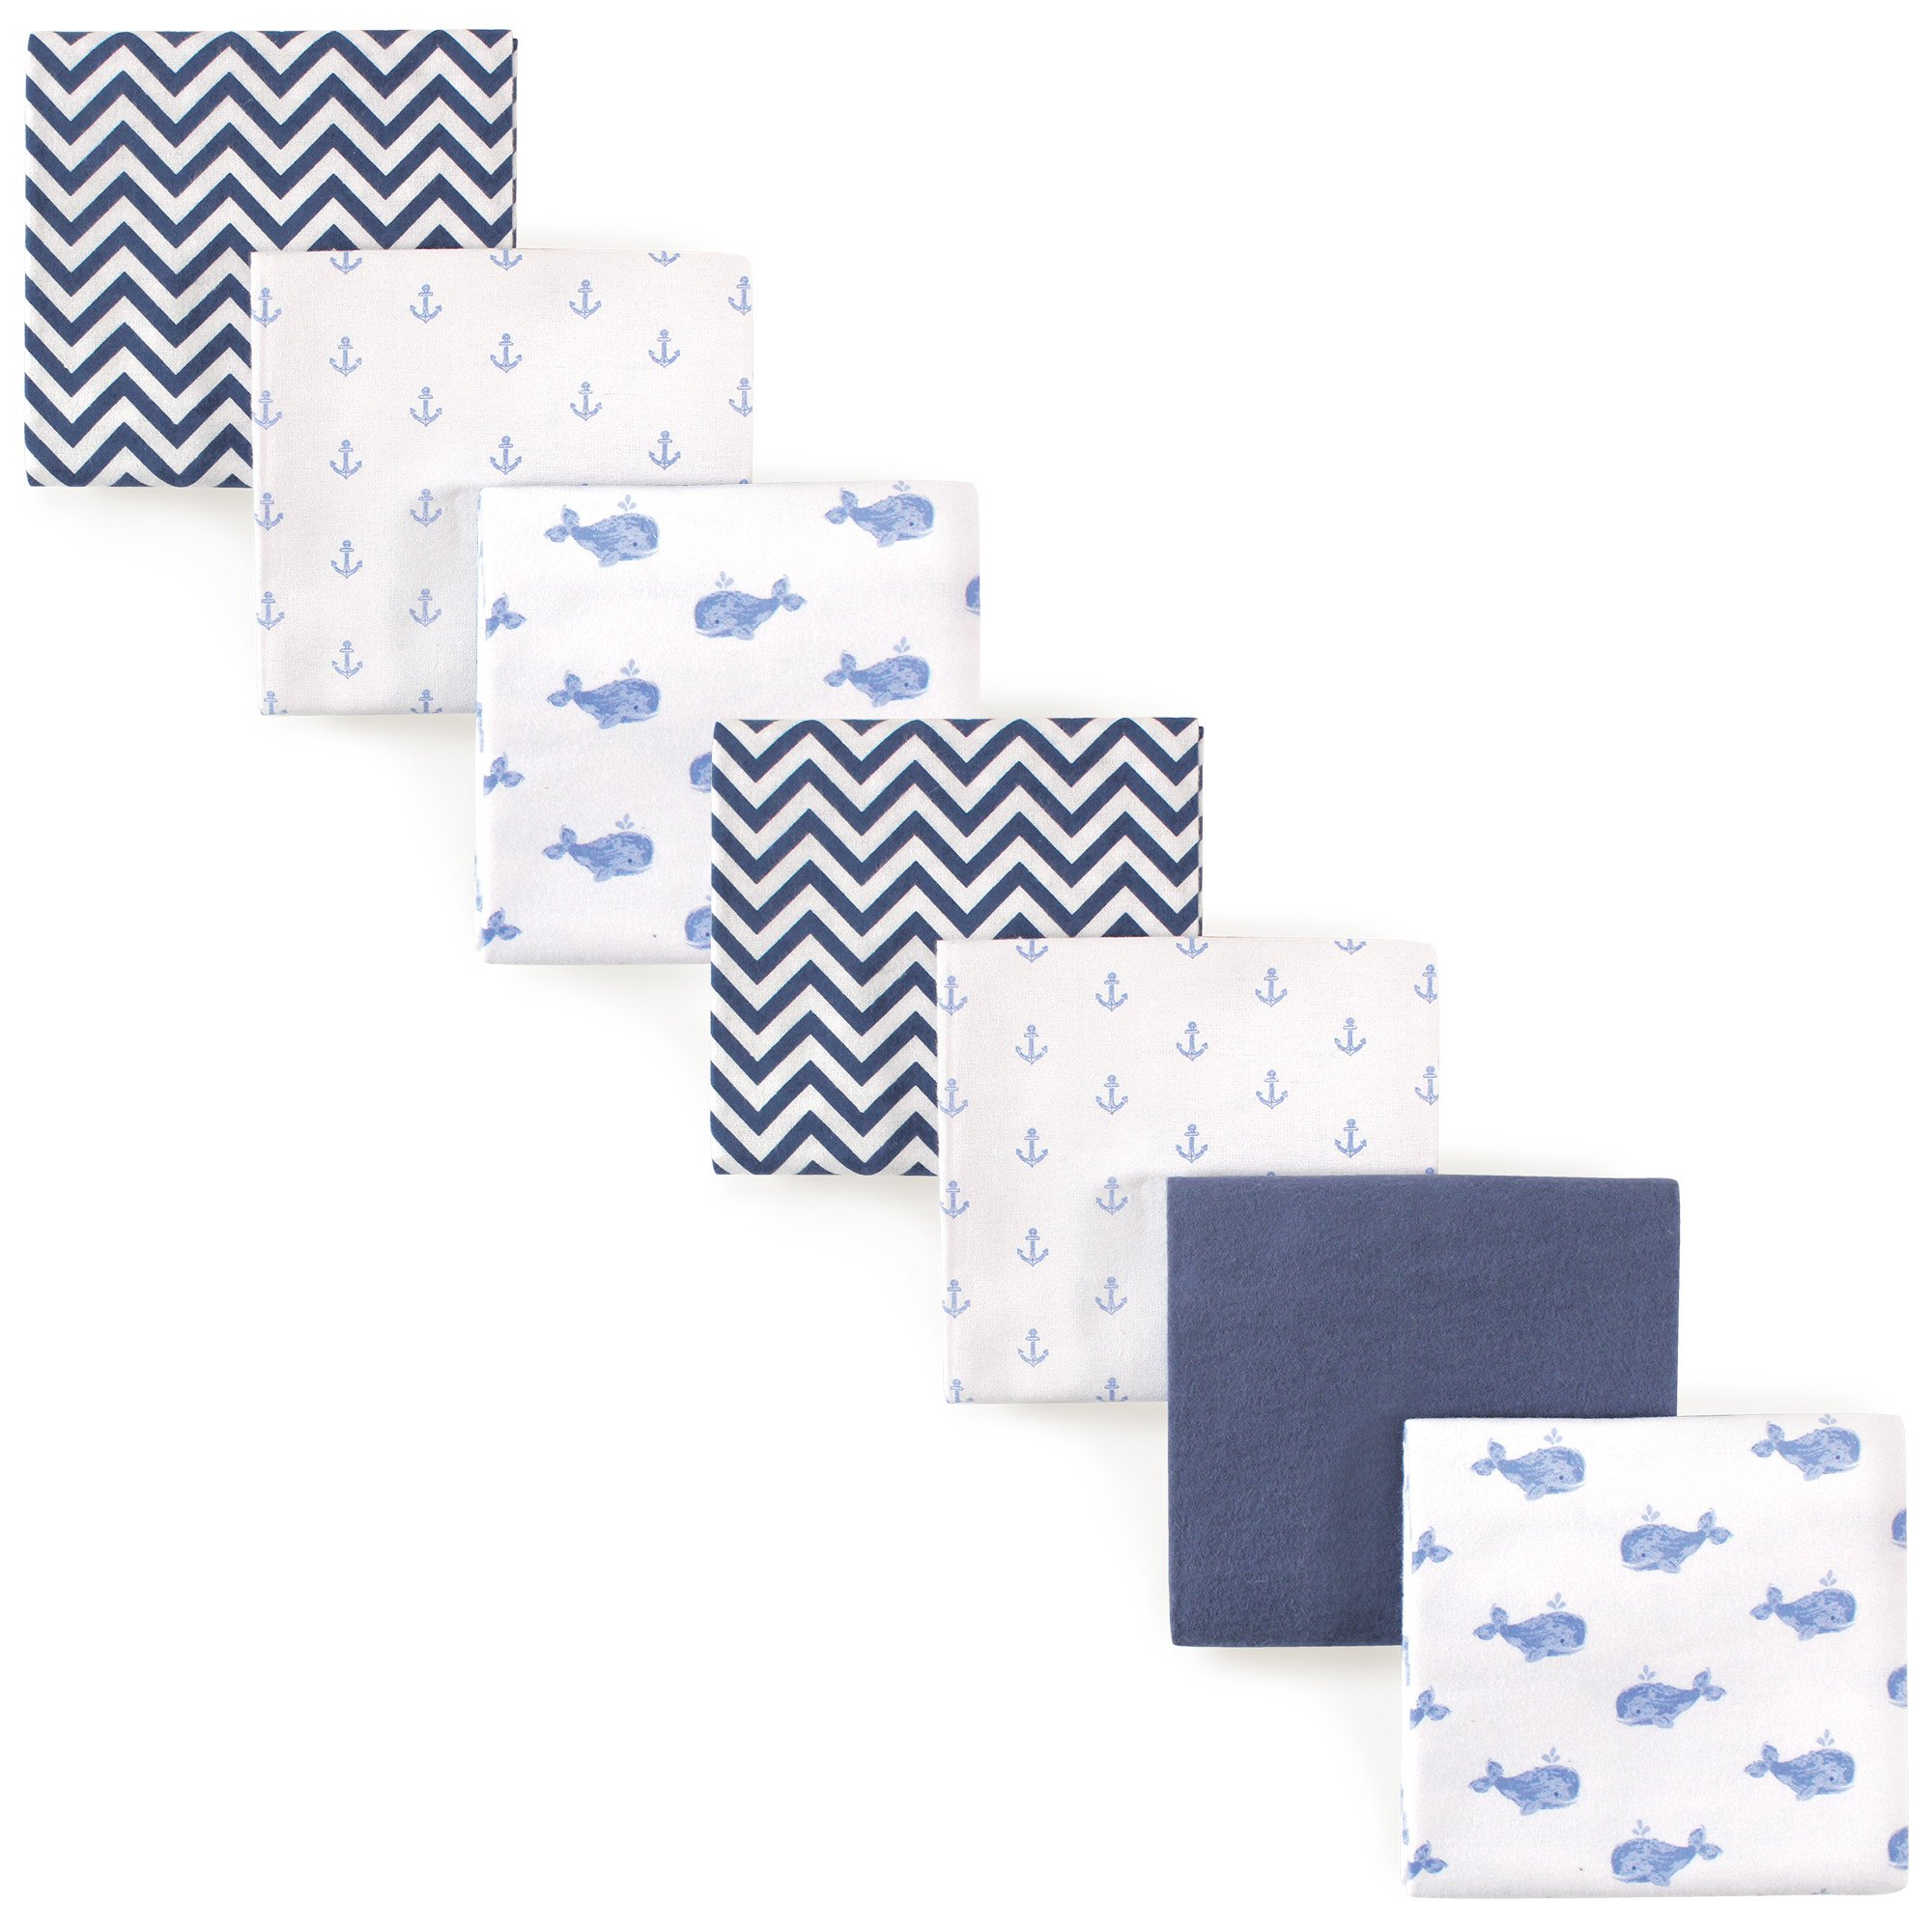 Hudson Baby Unisex Baby Cotton Flannel Receiving Blankets, 7-Pack, Blue Whale, One Size by Hudson Baby